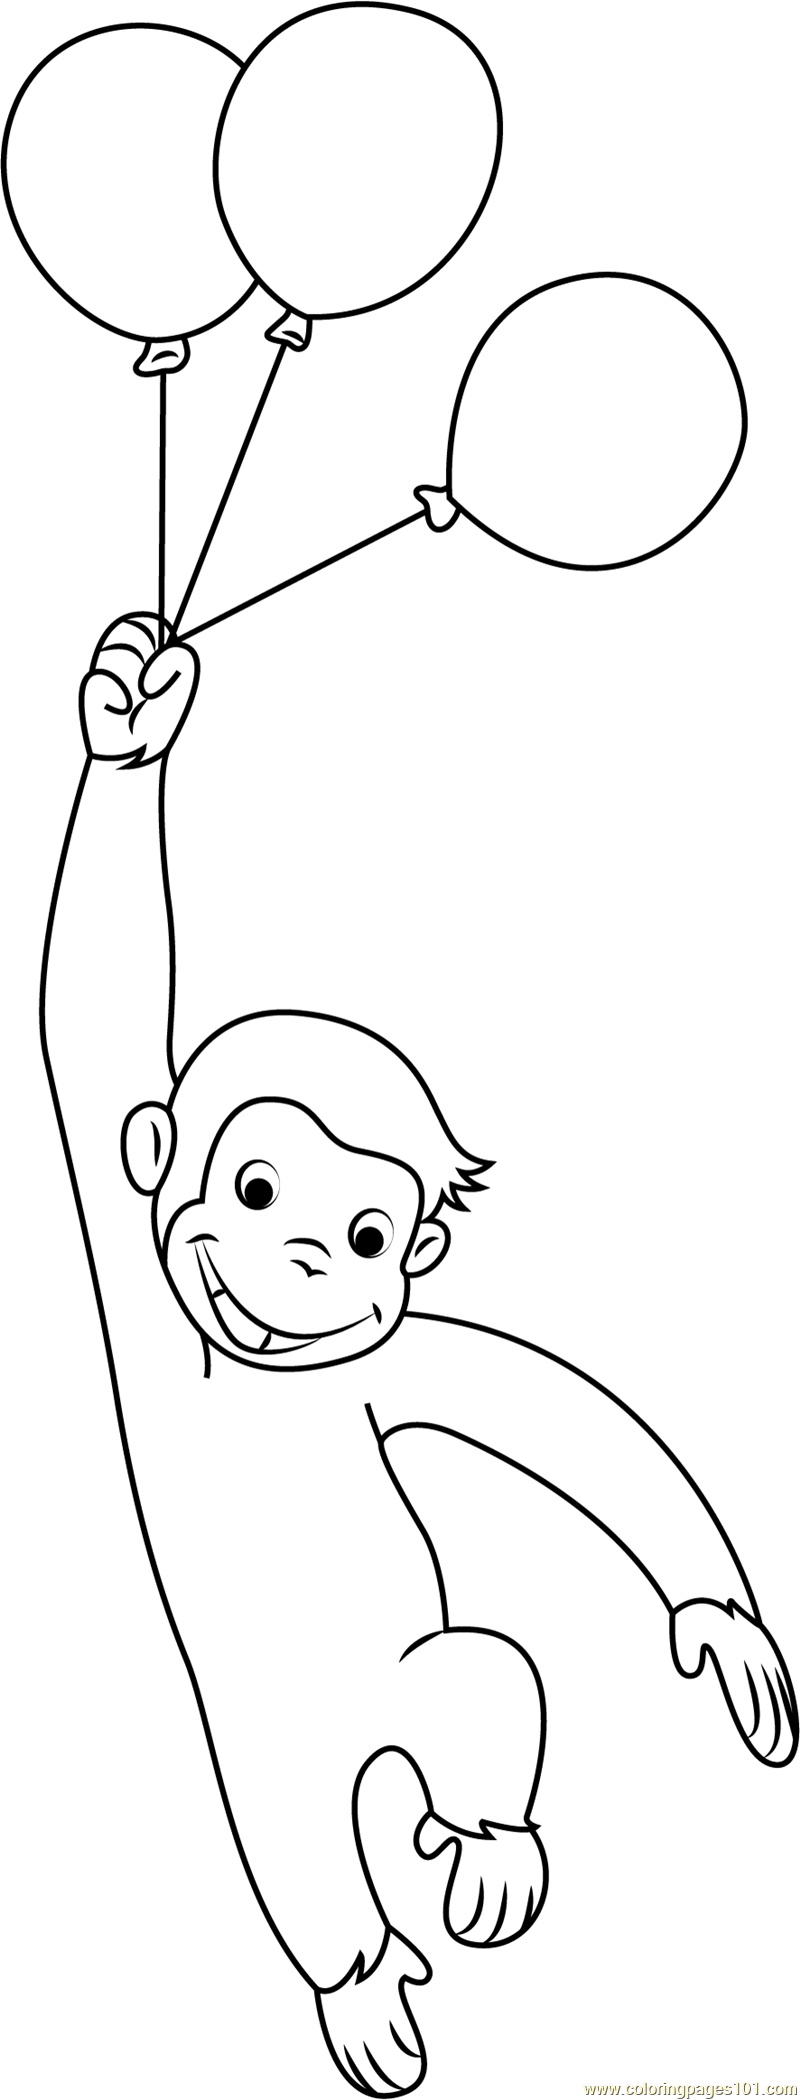 free printable curious george coloring pages curious george coloring pages to download and print for free coloring george free curious printable pages